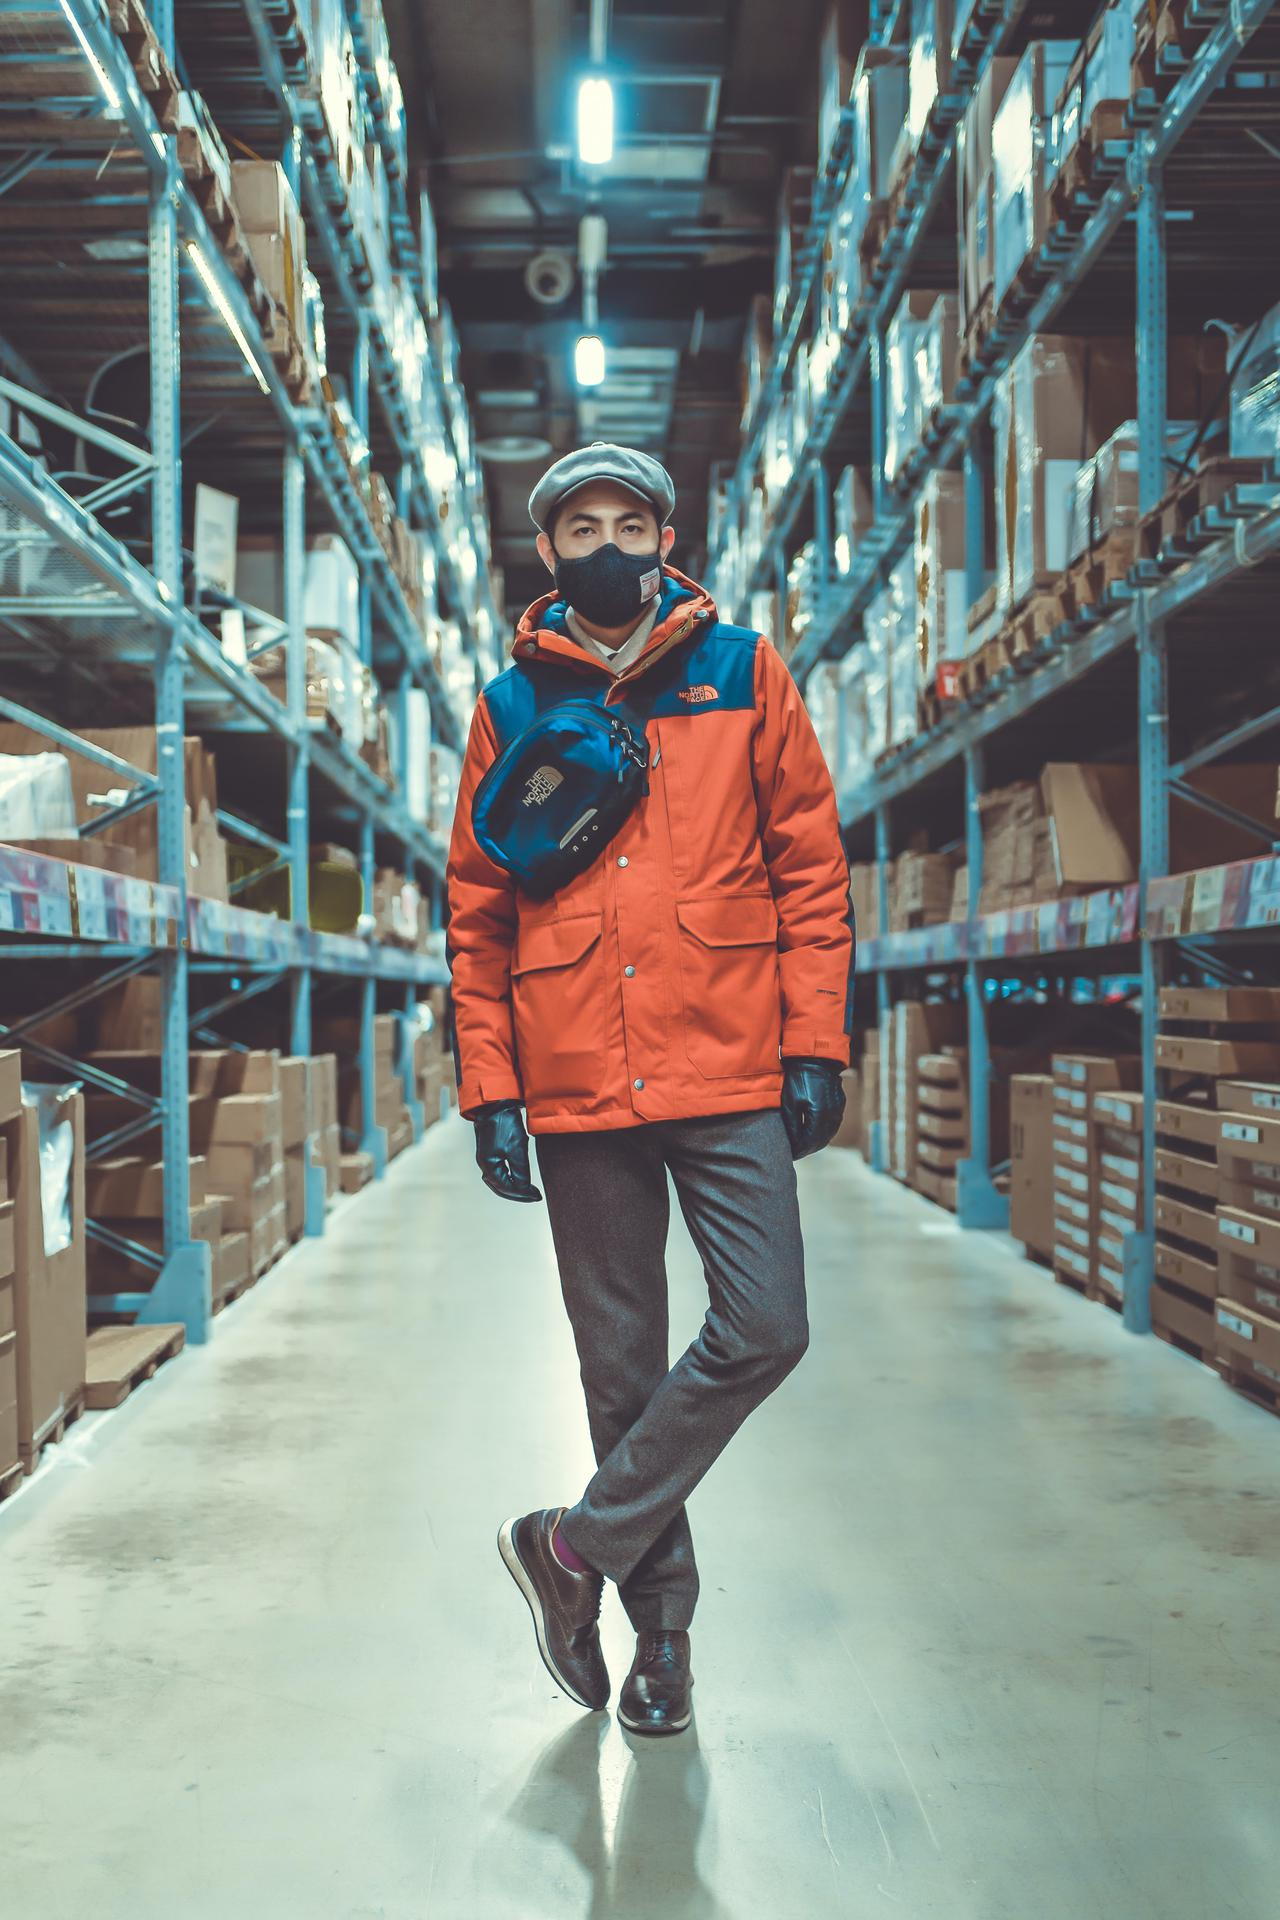 A warehouse staffing agency's guide to hiring.